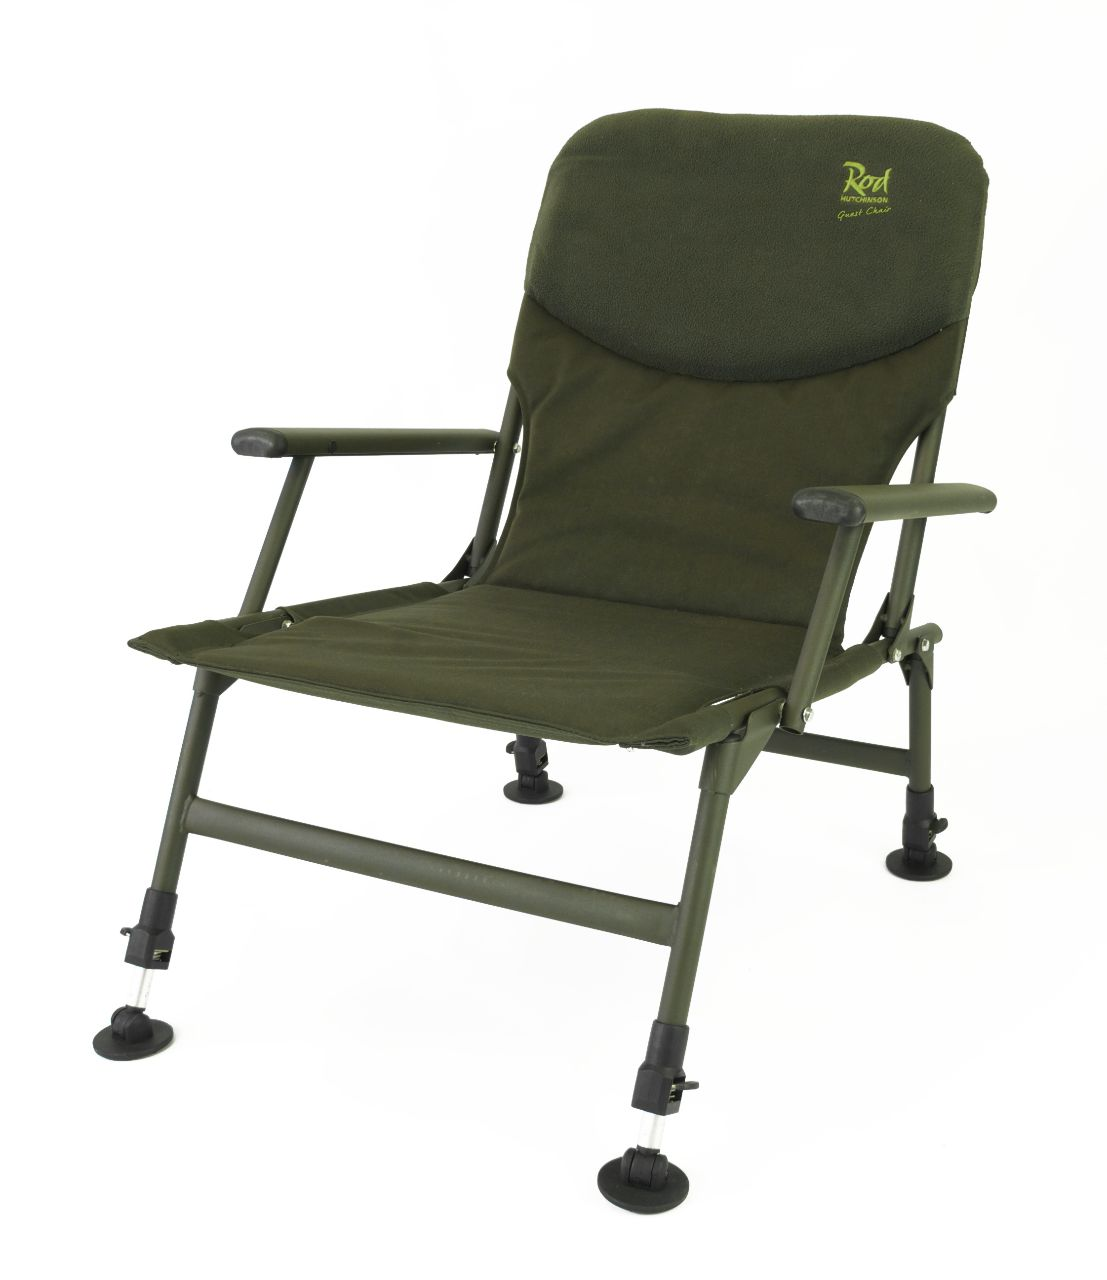 fishing guest chair how to cane a seat pre woven rod hutchinson sedia carpfishing dsm store